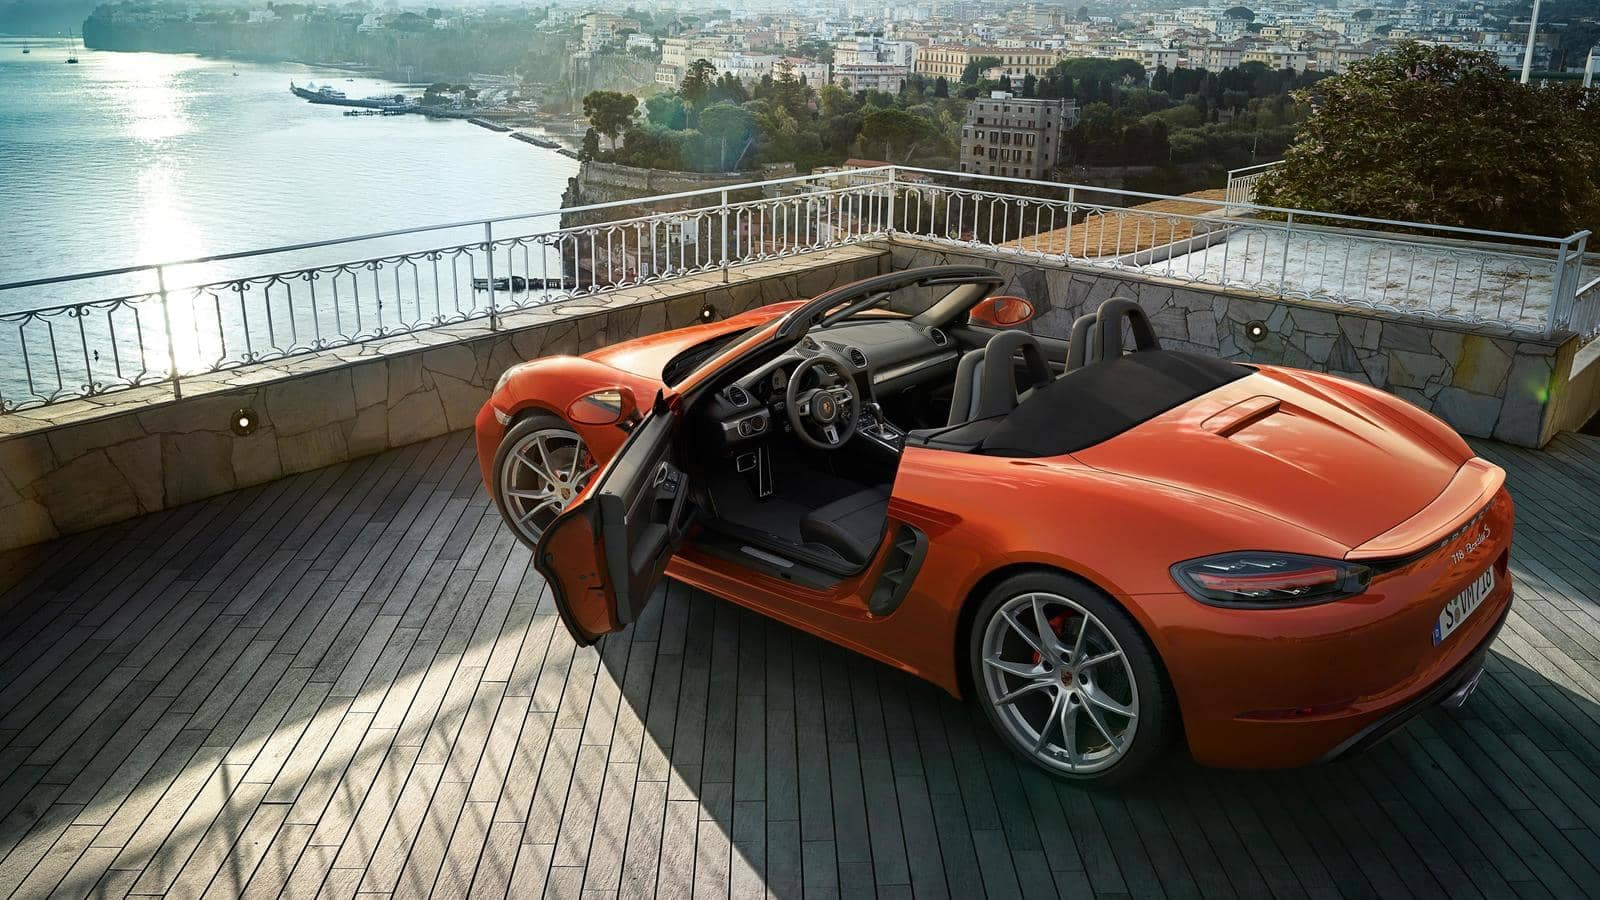 2018Porsche718Boxster with drivers door open